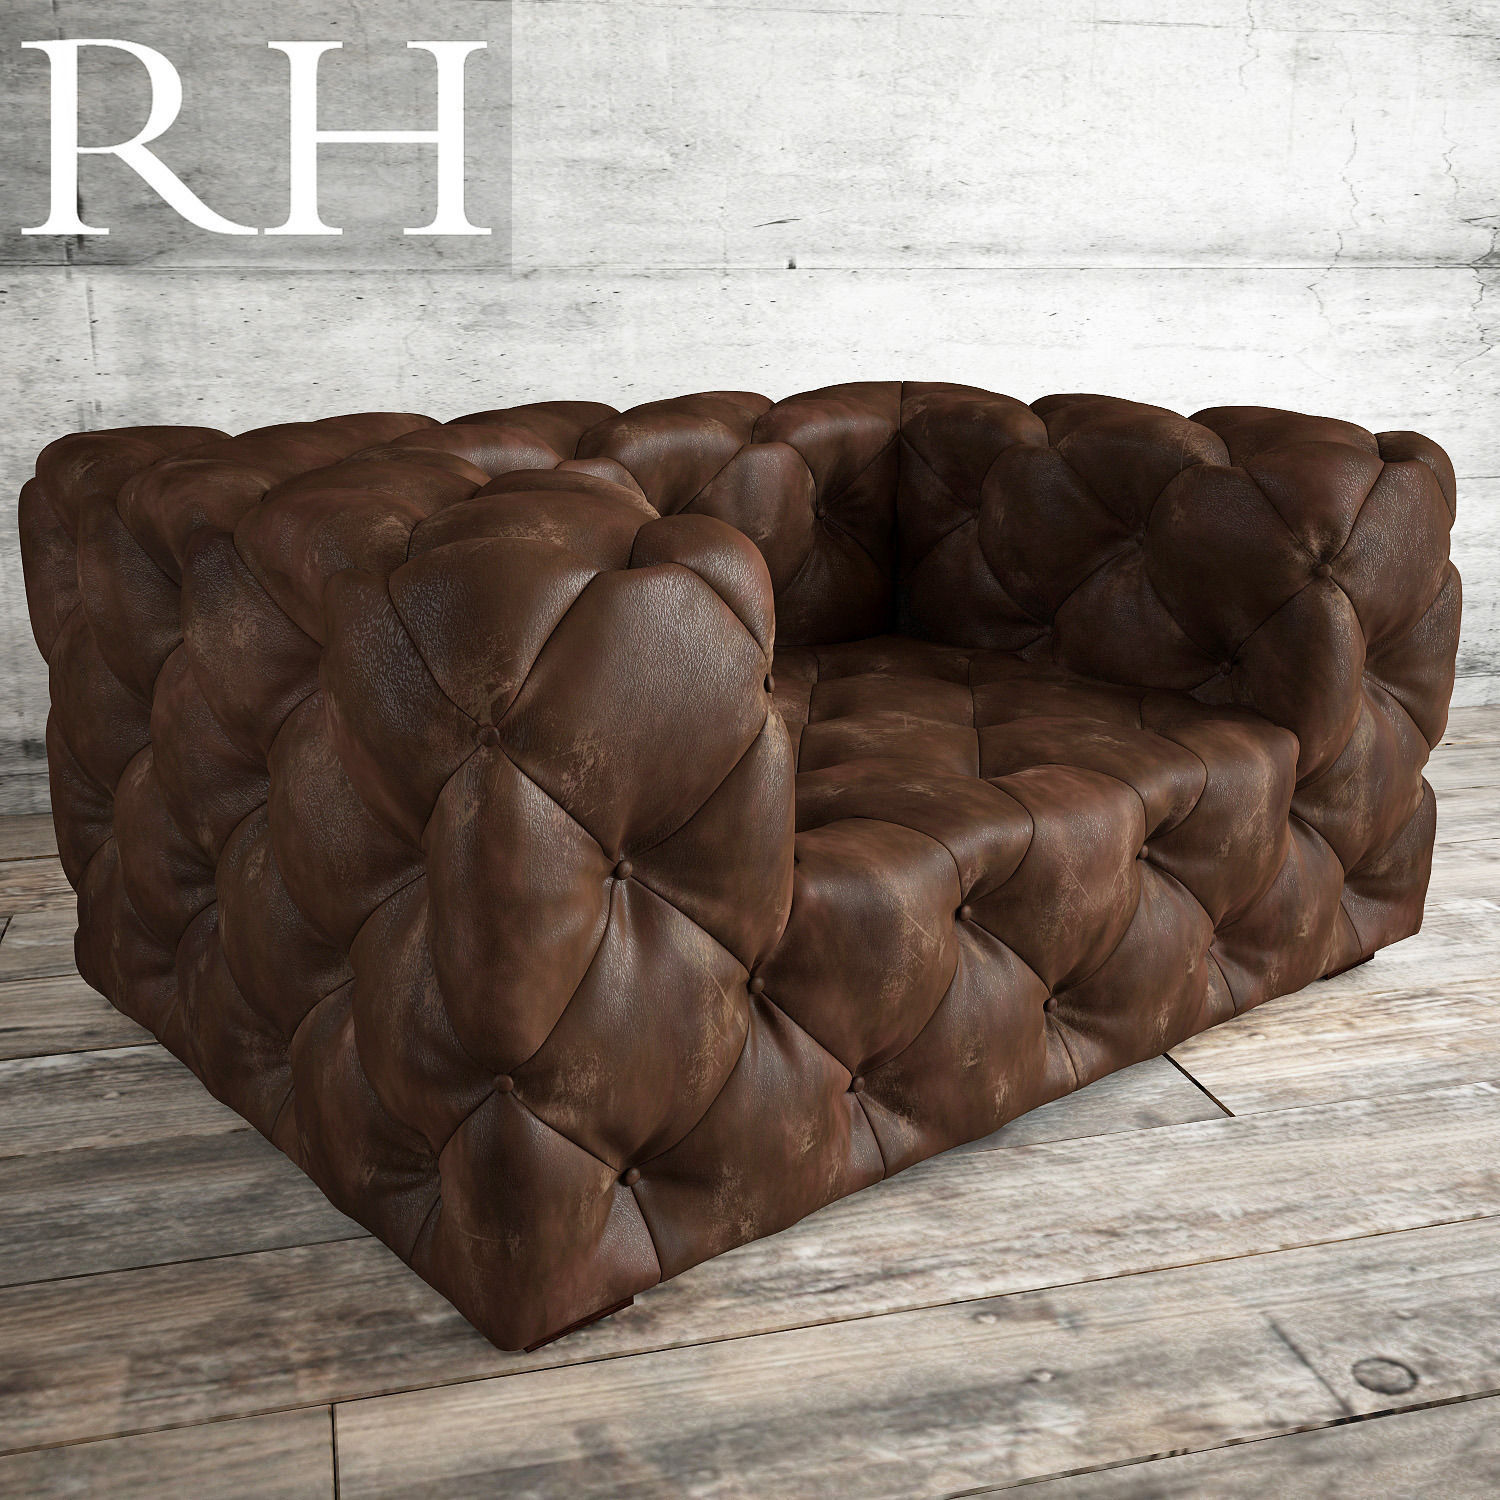 Soho Tufted Leather Chair 3d Model Max Fbx 1 ...